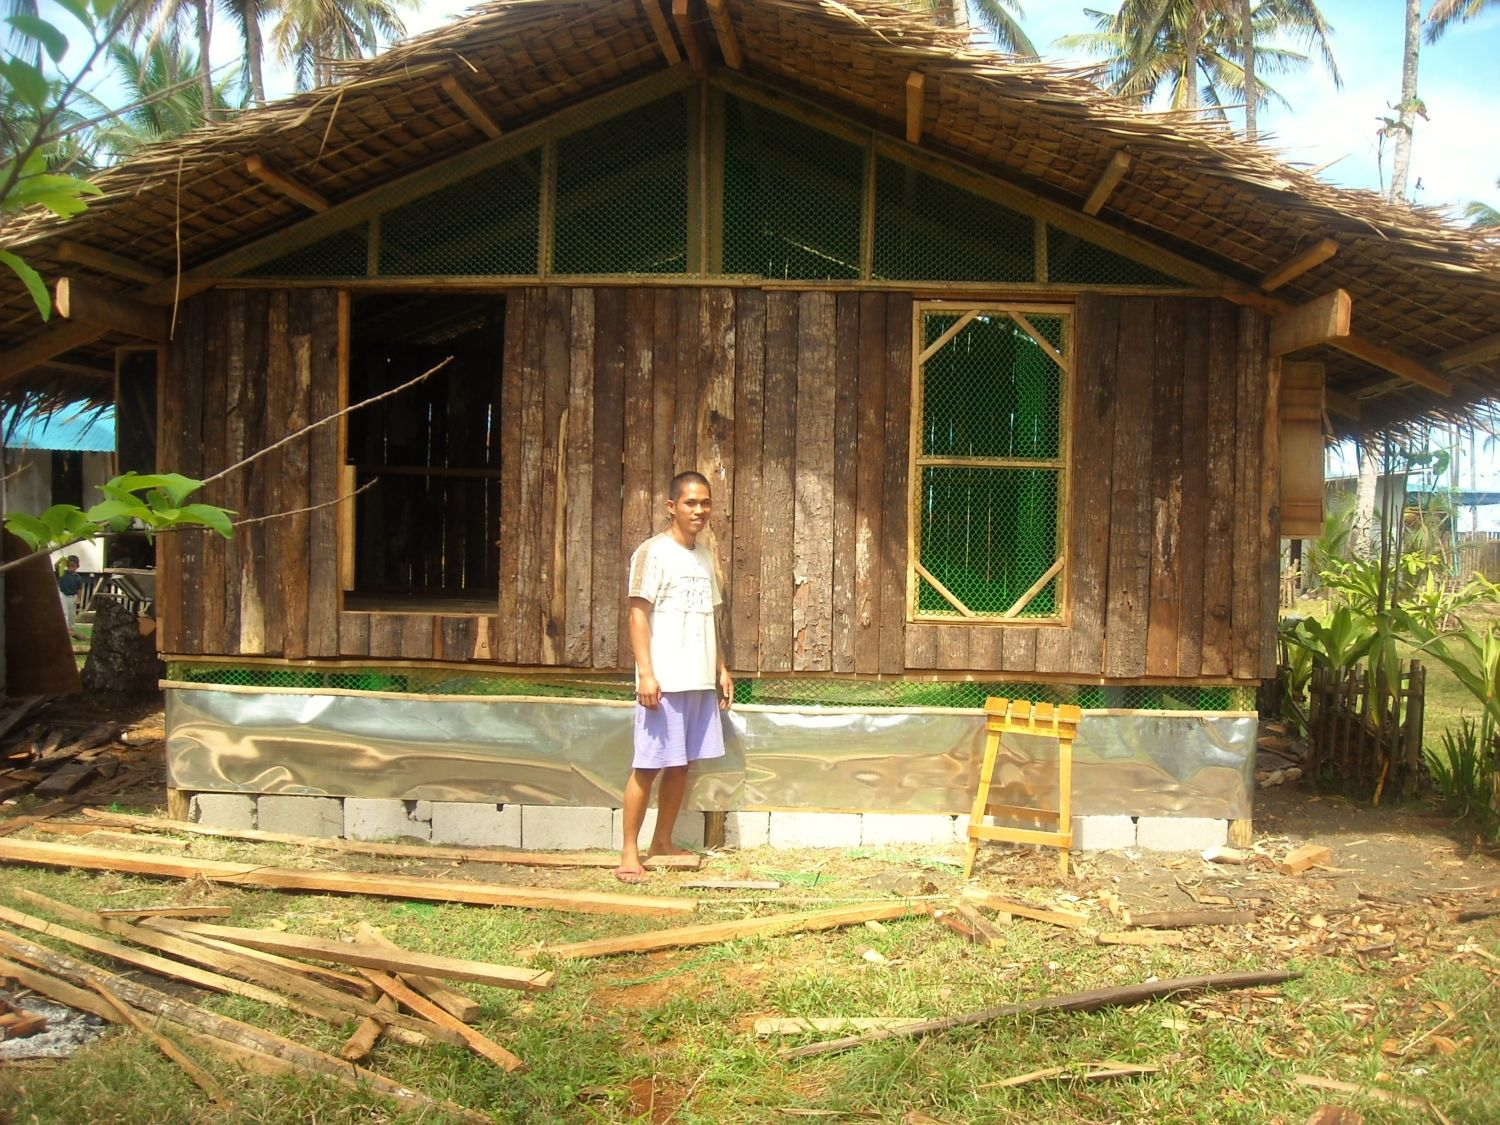 Magnificent The Balay Kubo Nipa Hut Largest Home Design Picture Inspirations Pitcheantrous